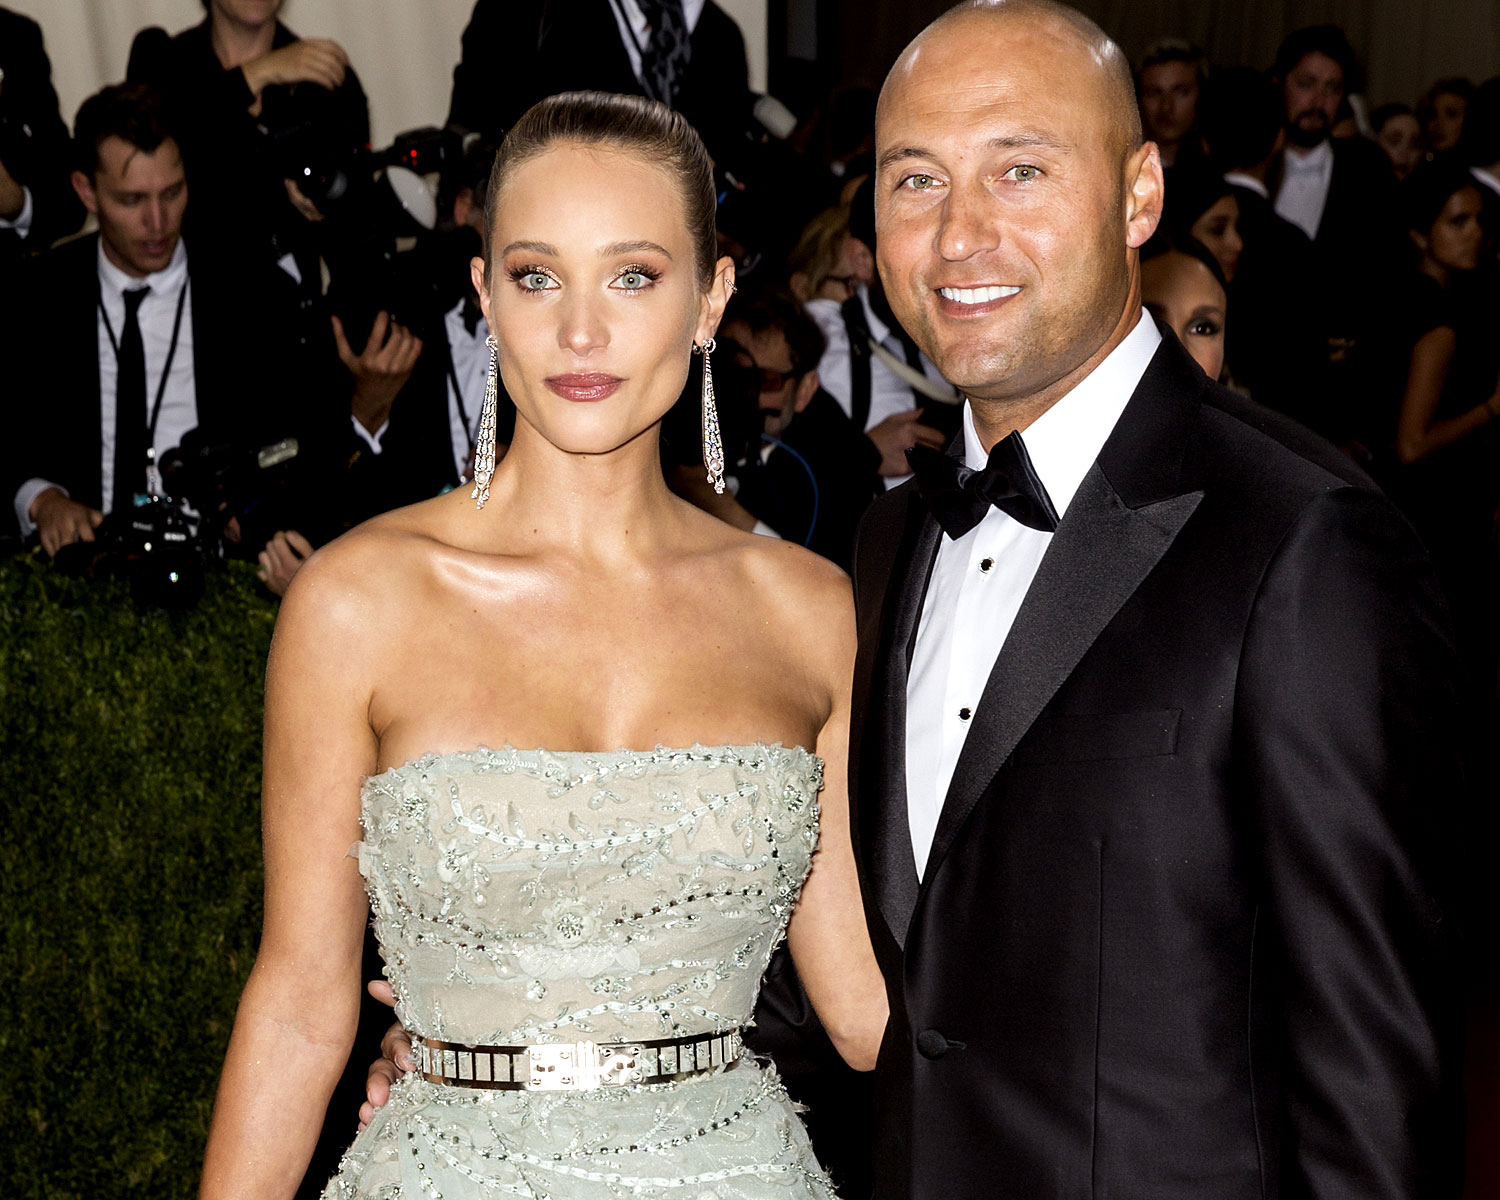 Colors For 2017 Fashion Derek Jeter S Wife Hannah Davis Announces Pregnancy In